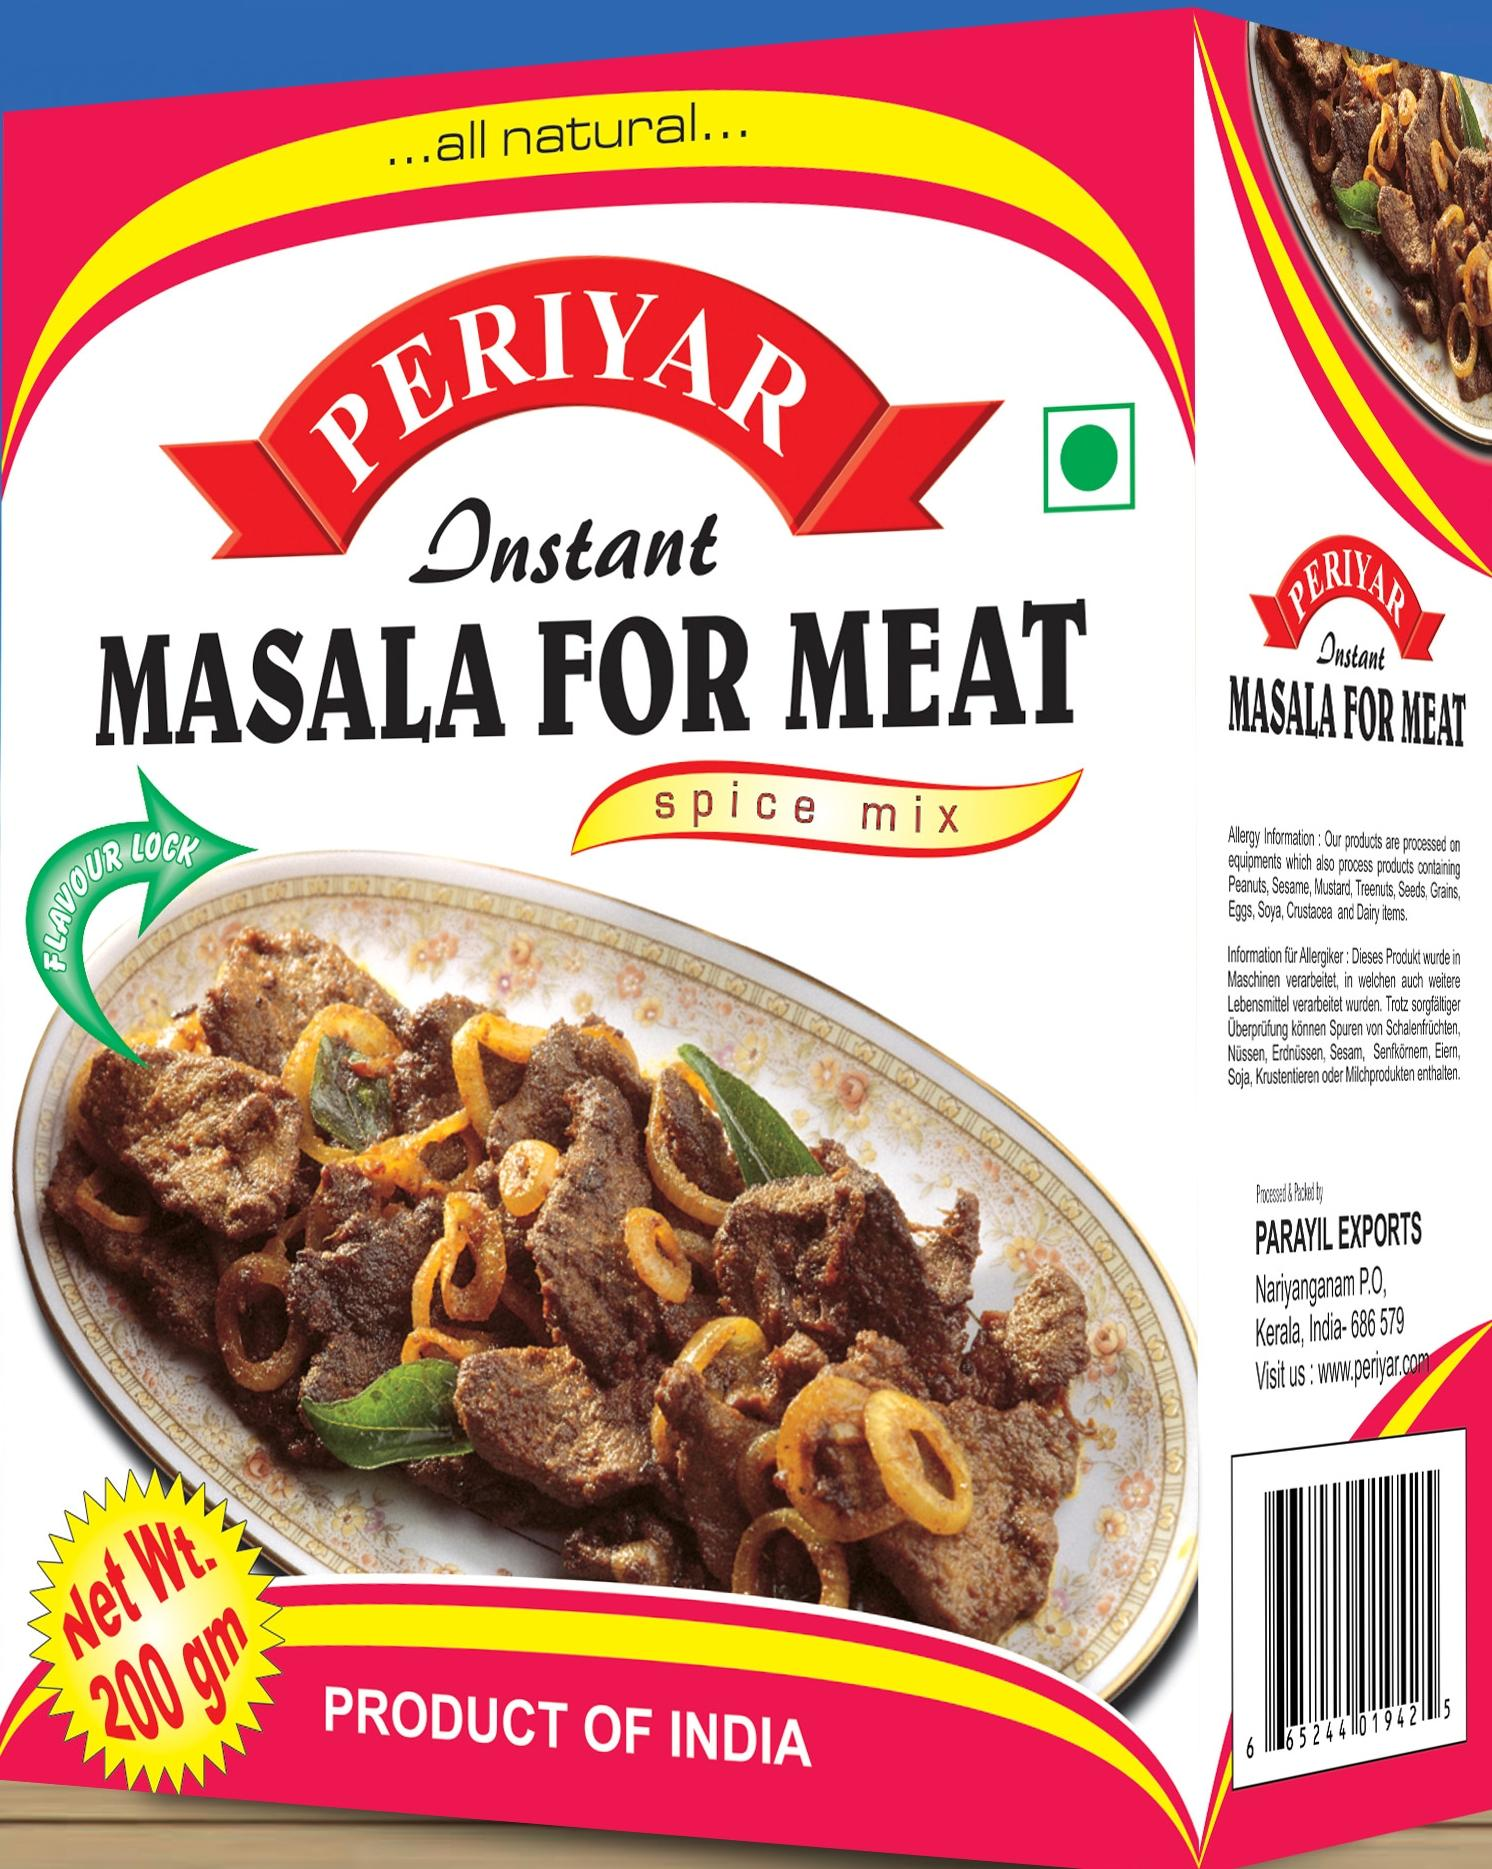 Periyar Masala for Meat Instant